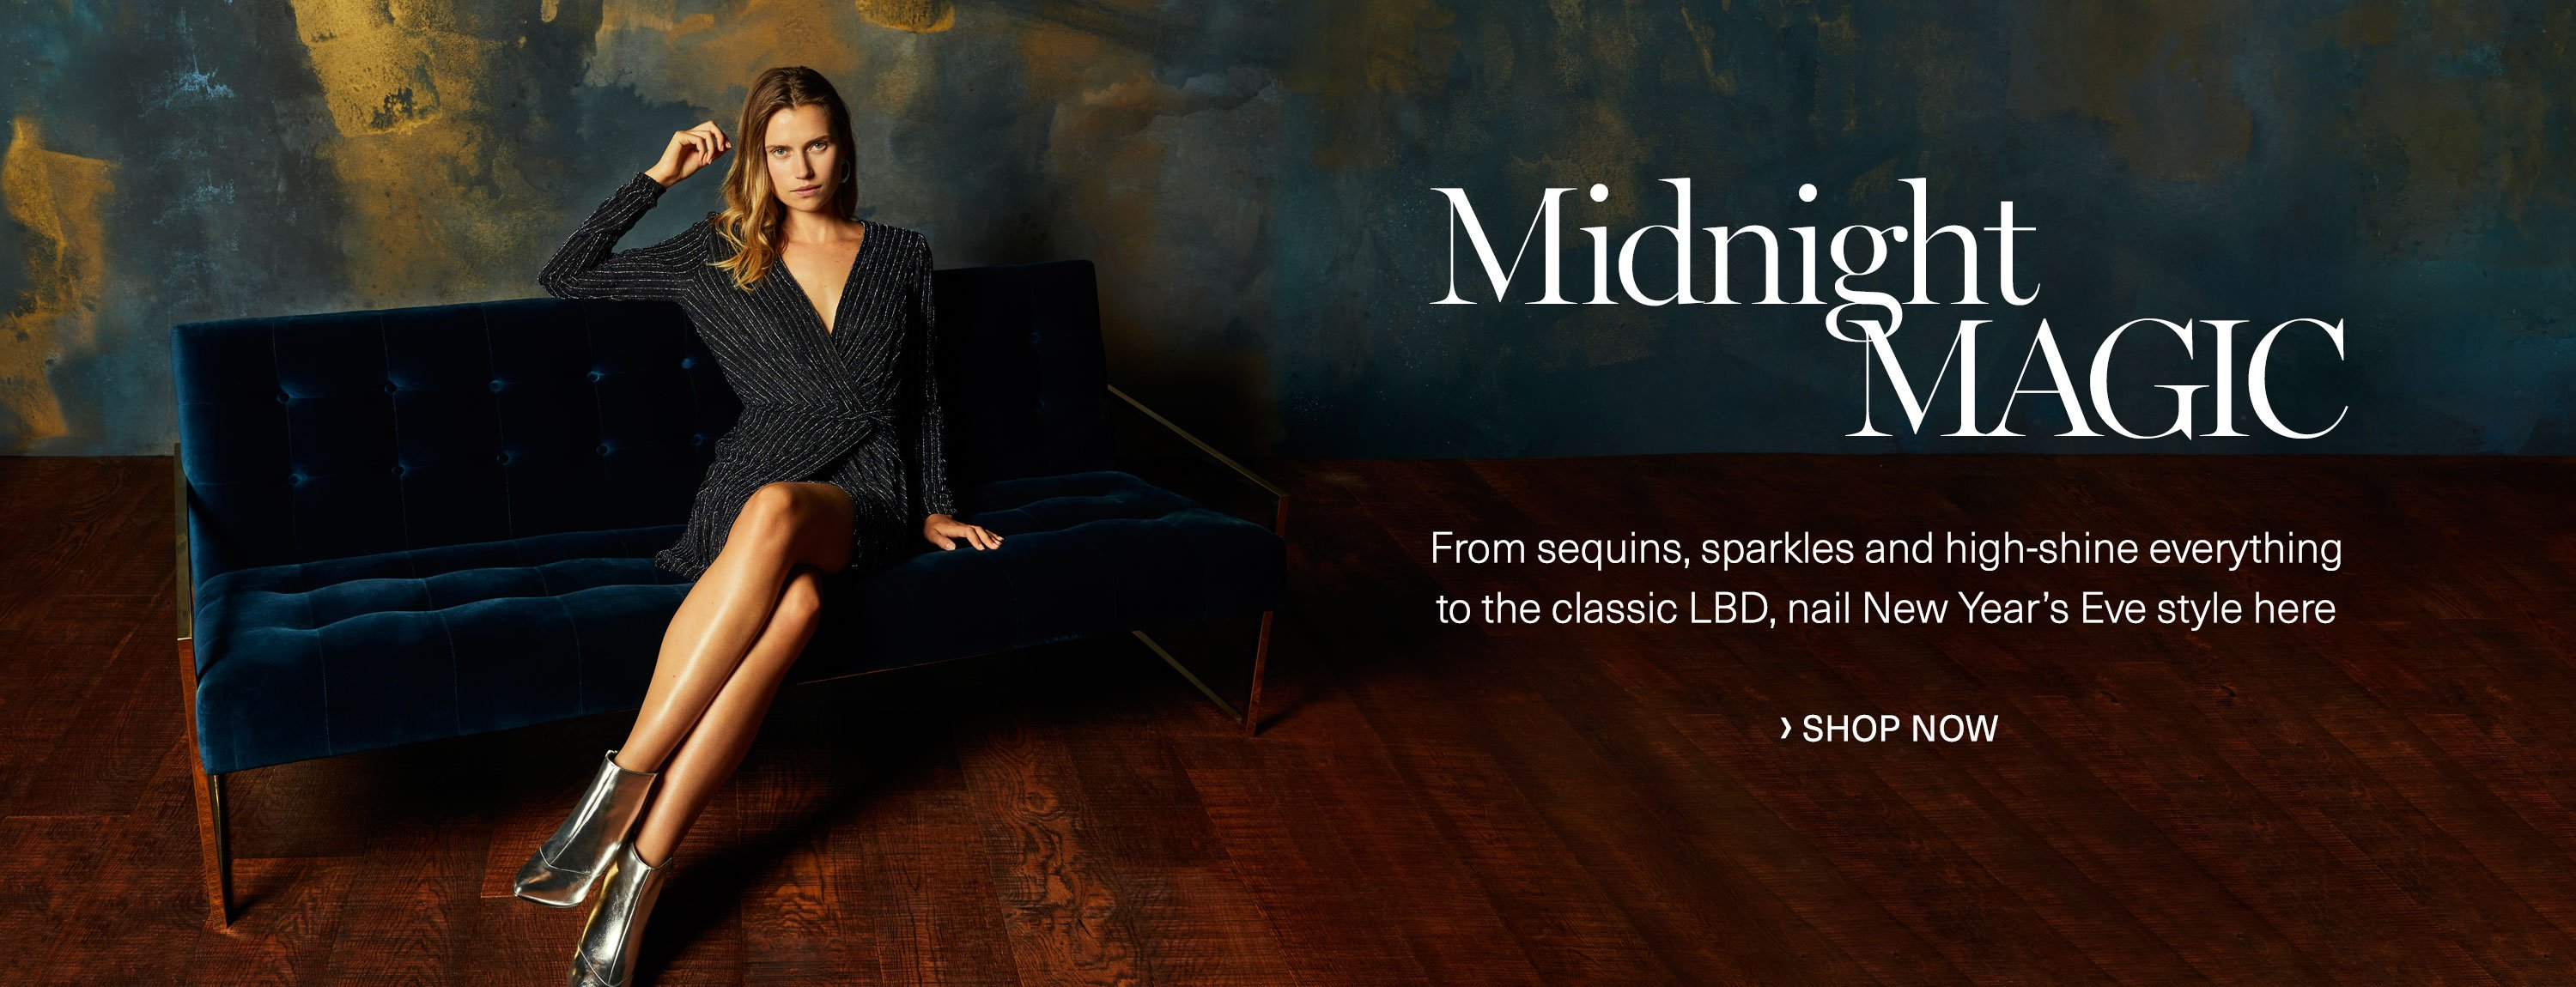 Midnight magic: From sequins, sparkles and high-shine everything to the classic LBD, nail New Year's Eve style here